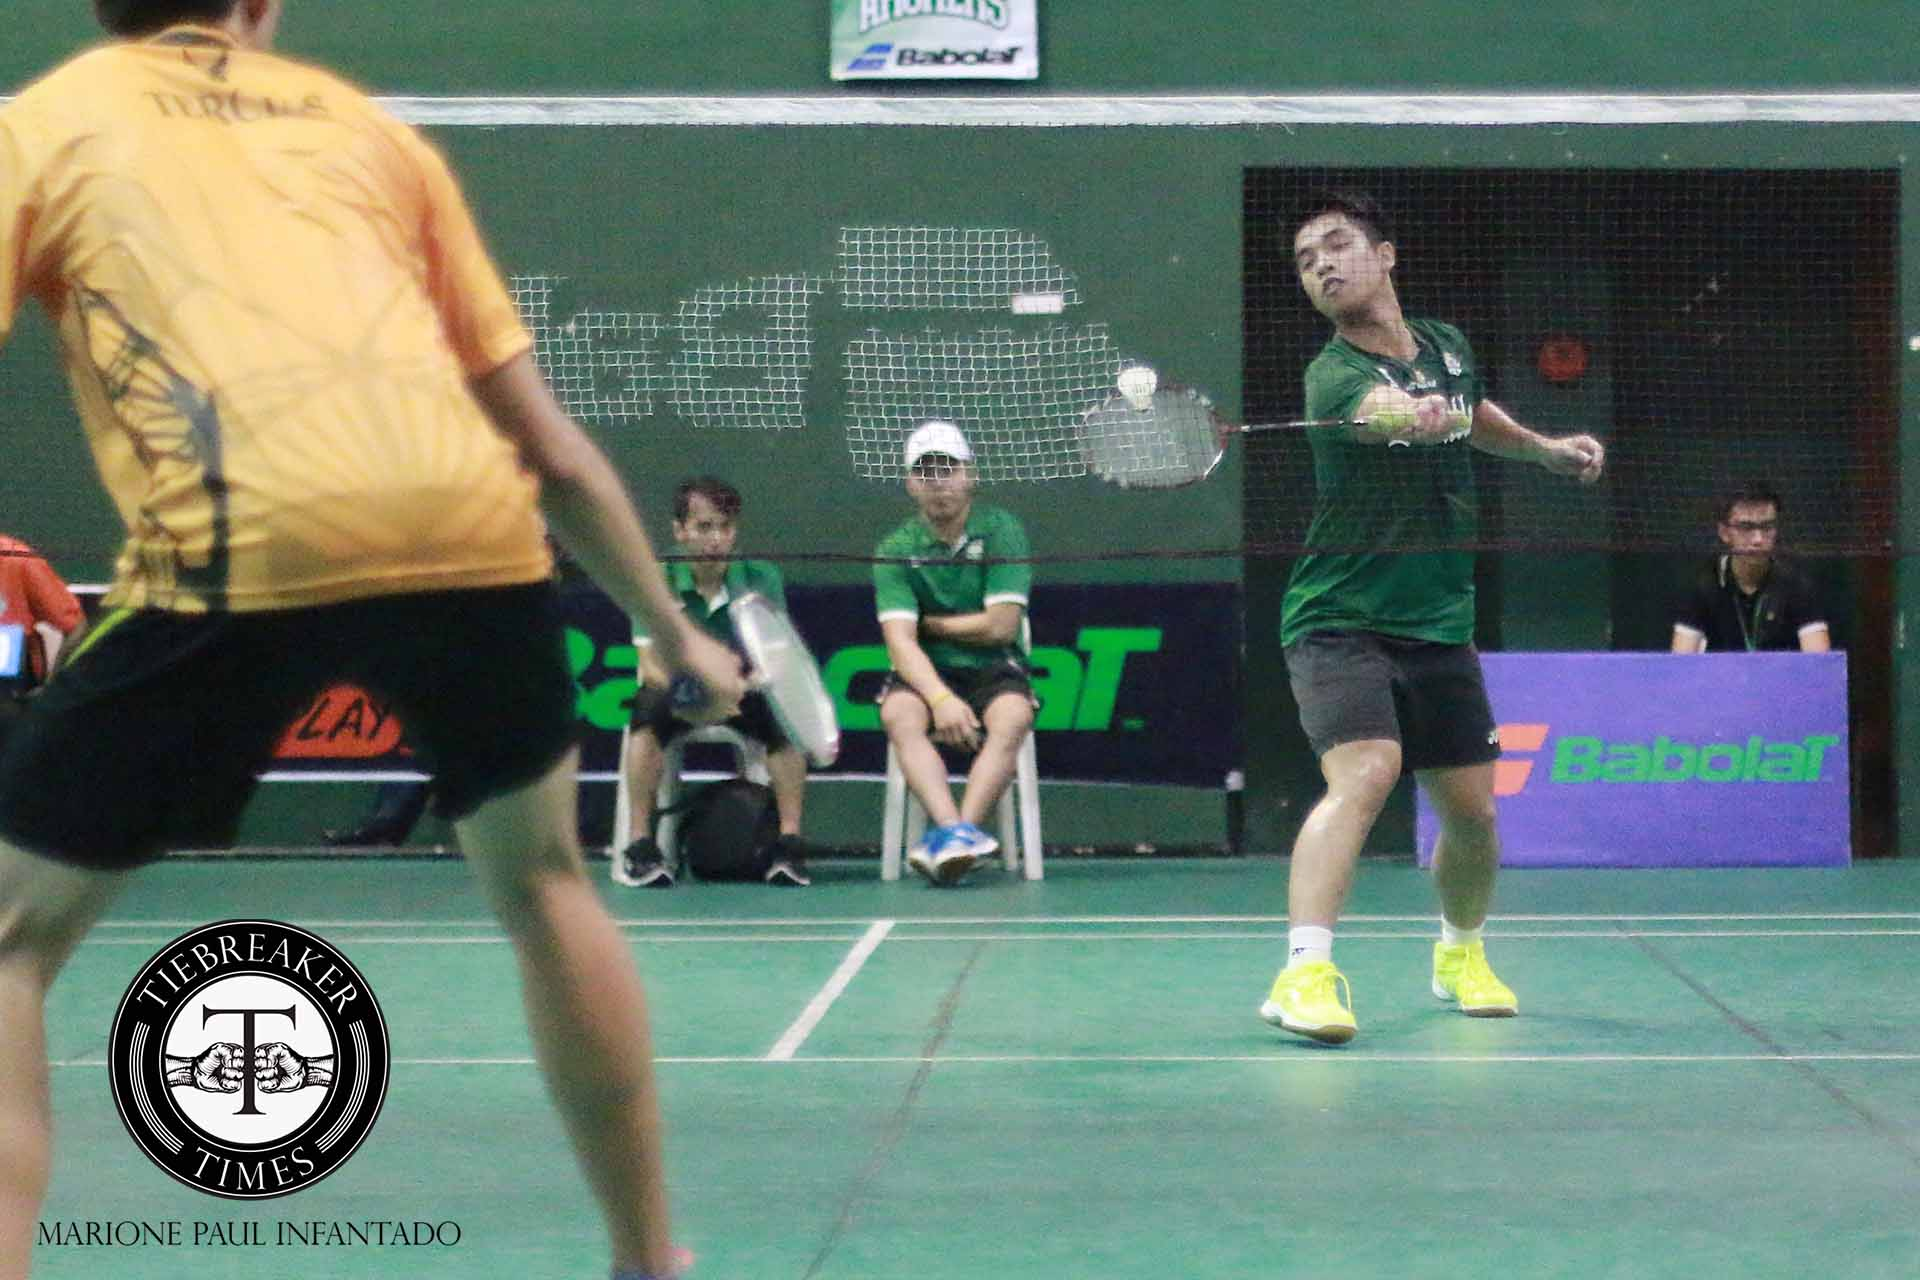 Tiebreaker Times La Salle holds off FEU in UAAP opening day Badminton DLSU FEU News UAAP Uncategorized  UAAP Season 79 Badminton UAAP Season 79 Kenneth Monterubio Jerickson Obaob FEU Men's Badminton Team DLSU Men's Badminton Team Cayel Pajarillo Anton Cayanan